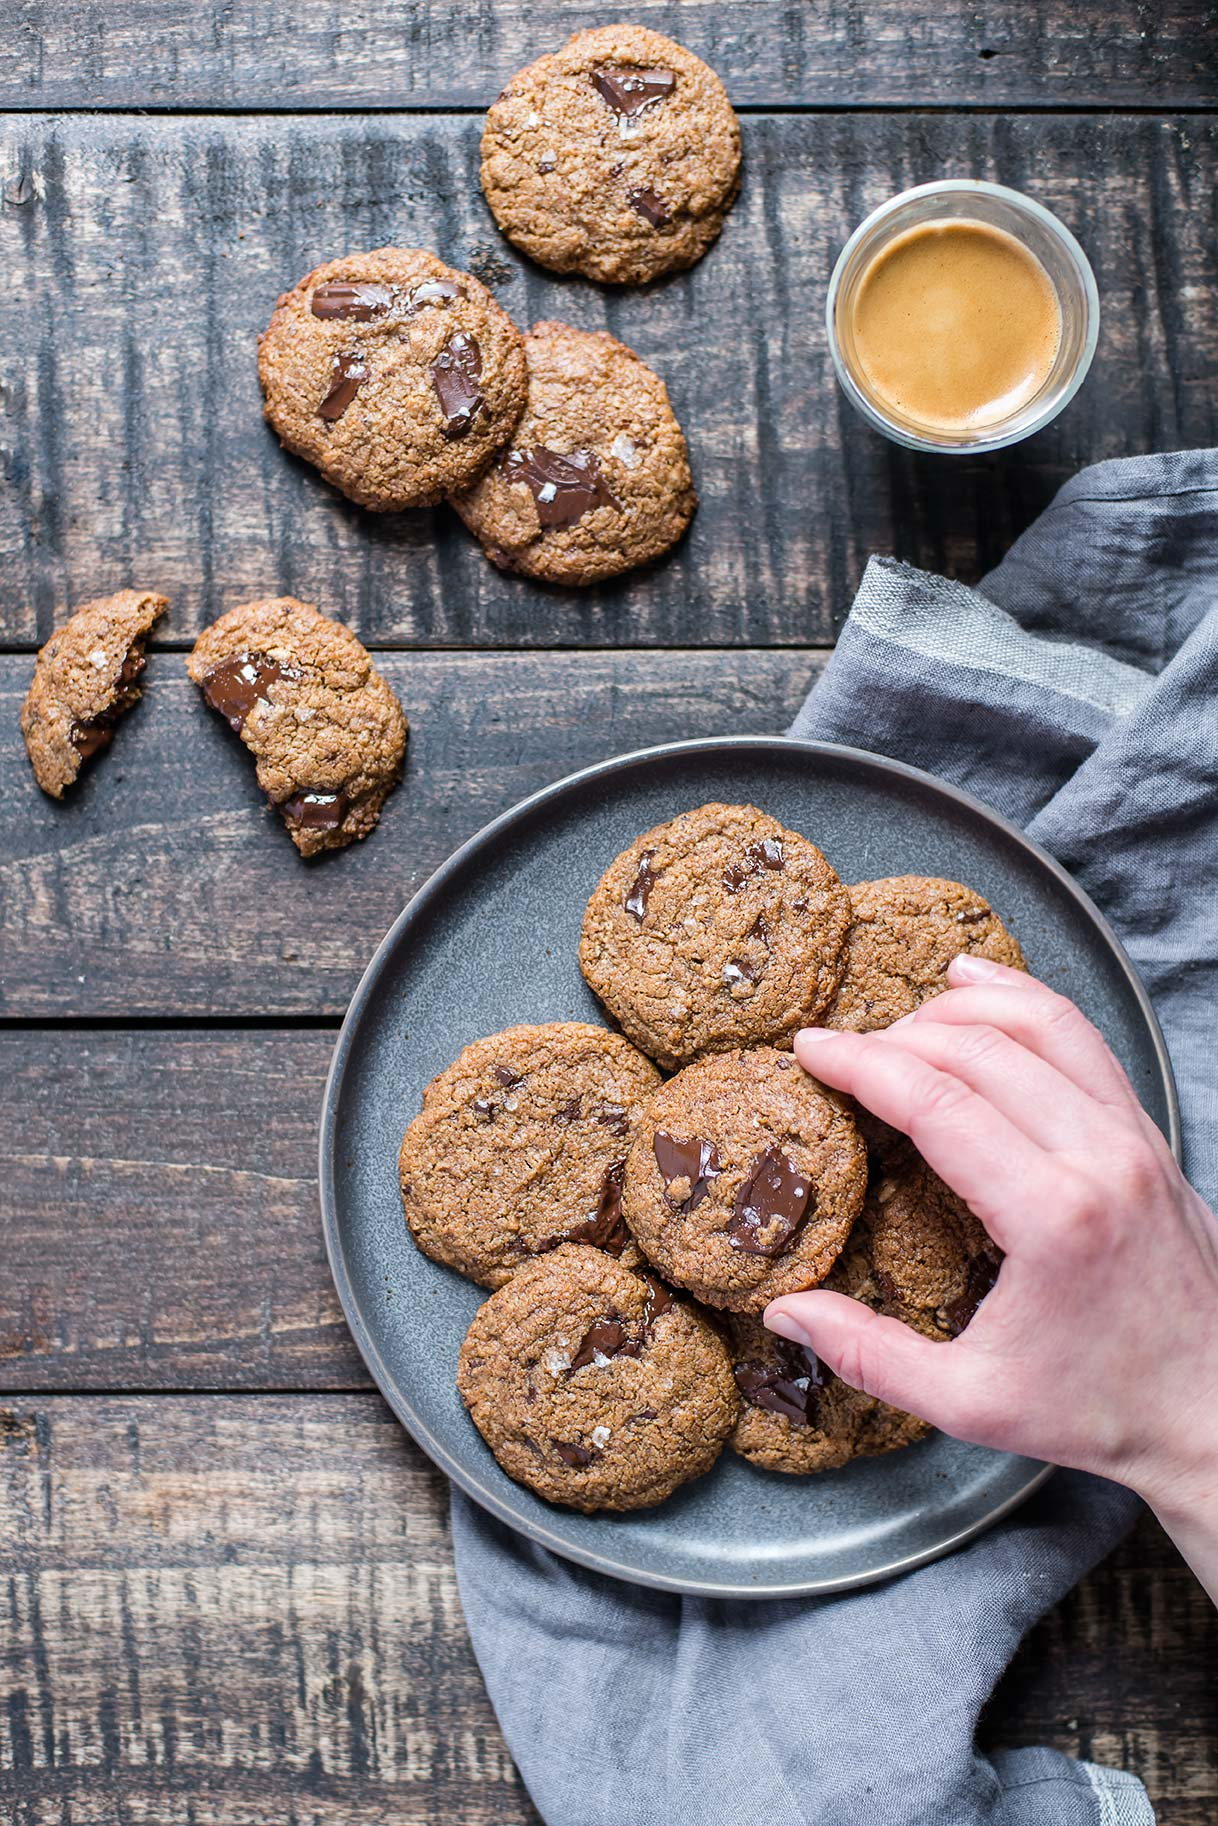 Chewy Tahini Chocolate Chip Cookies (Gluten-Free & Grain-Free)